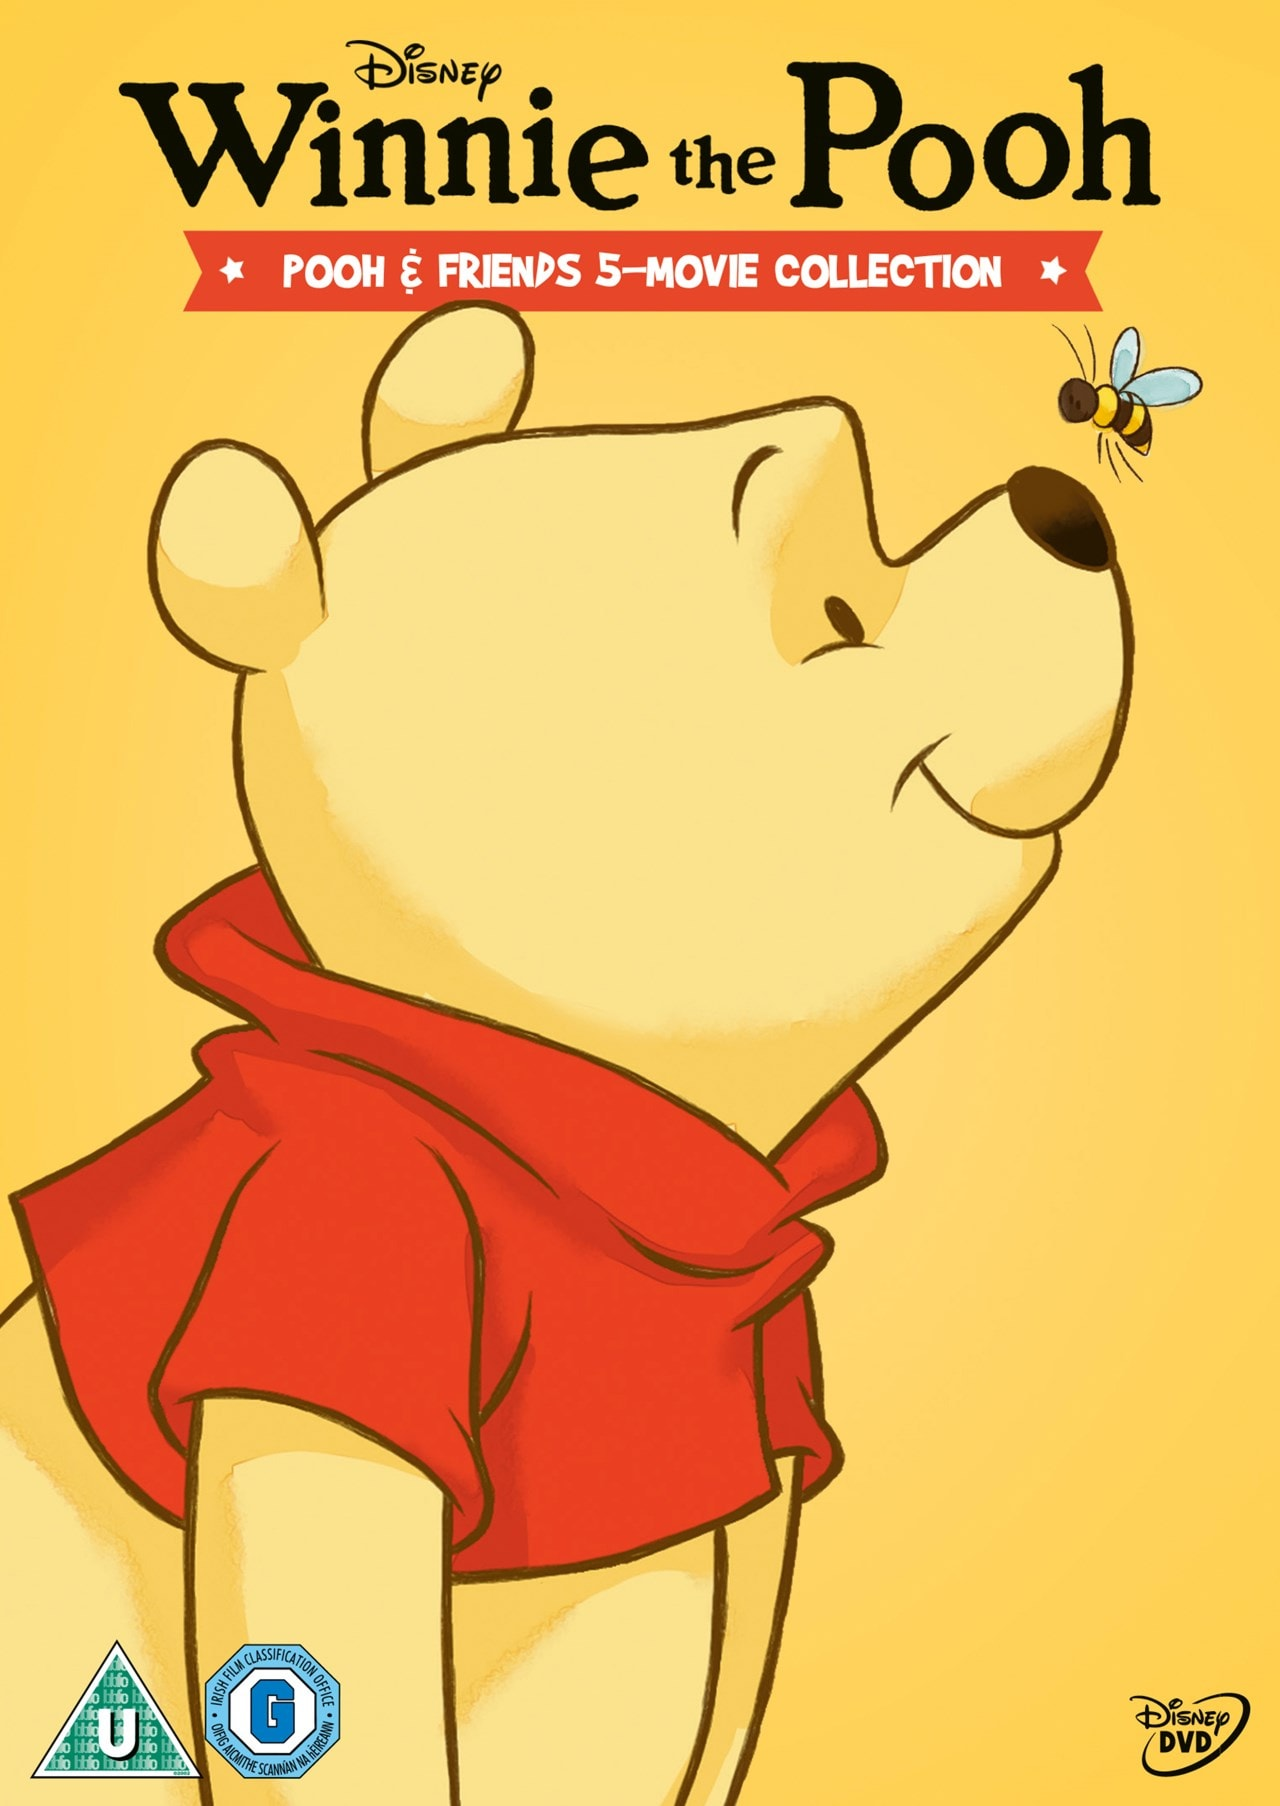 Winnie the Pooh: Pooh & Friends - 5-movie Collection - 1